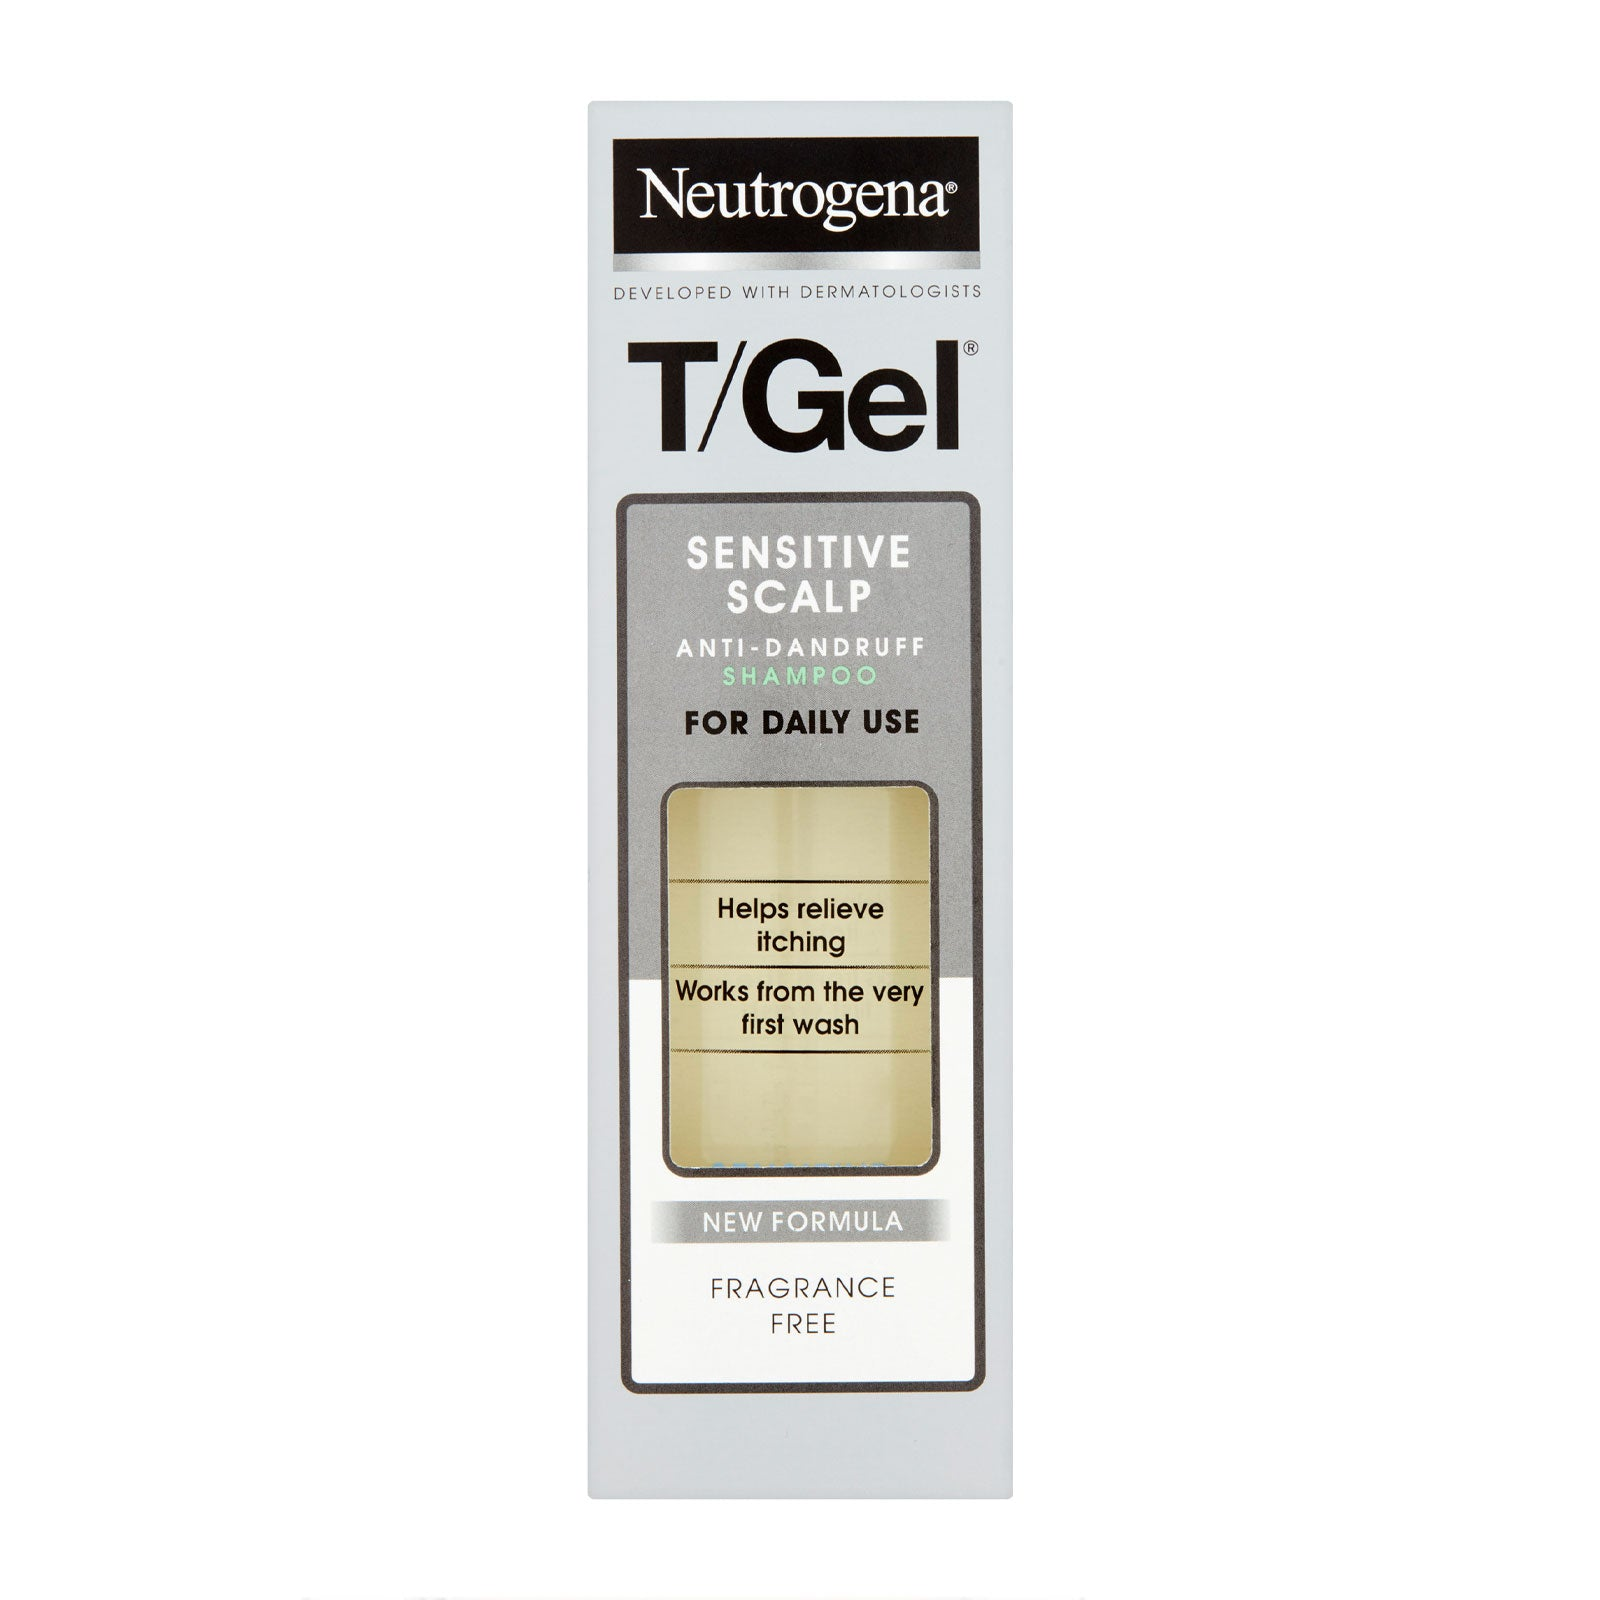 Neutrogena T/Gel Shampoo Sensitive Scalp 125ml